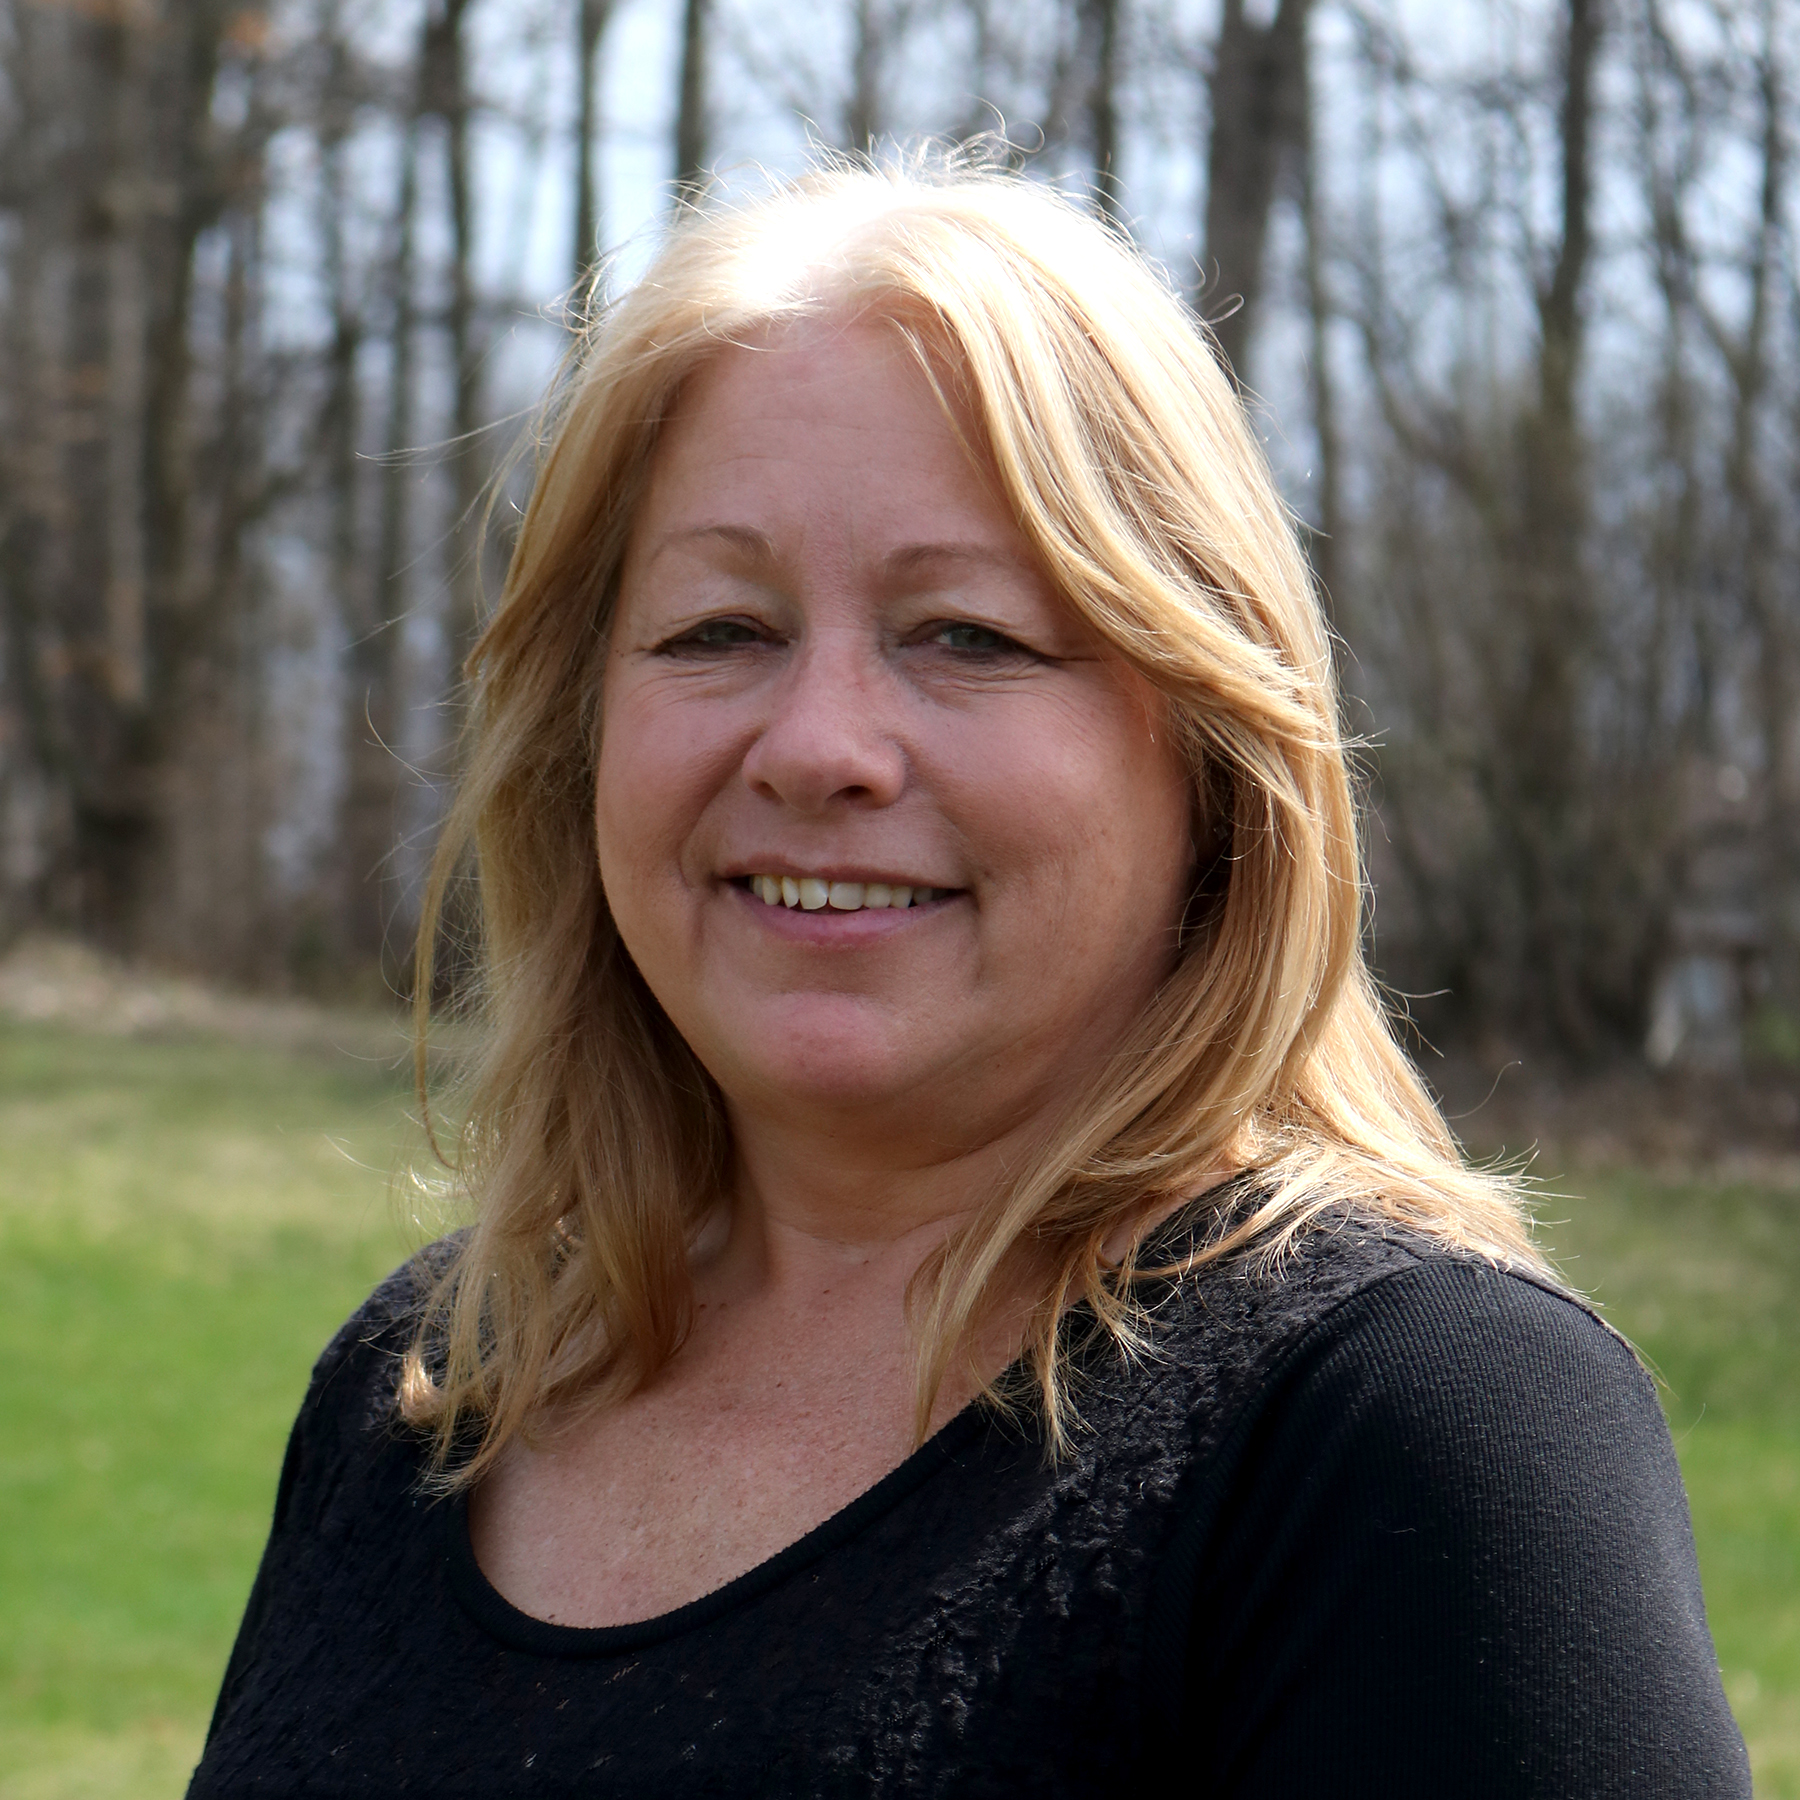 Charlene Gawronski   Main Office  E-Mail:  cgawronski@kwoods.org   Mrs. Gawronski came to work at Kensington Woods in 2014 and loves working at KWoods. Before coming to Kensington Woods, Mrs. Gawronski worked as an Administrative Secretary in a corporate office for 6 years before taking a leave to raise her family. She also worked as a Secretary and Library Services Coordinator at Howell Public Schools for 6 years and owned a party store in Webberville. Mrs. Gawronski's youngest daughter graduated from KWoods in 2011.  In her off time she love to ride her horses, hunt, camp, and metal detect. She recently startedto master the art of fly fishing.